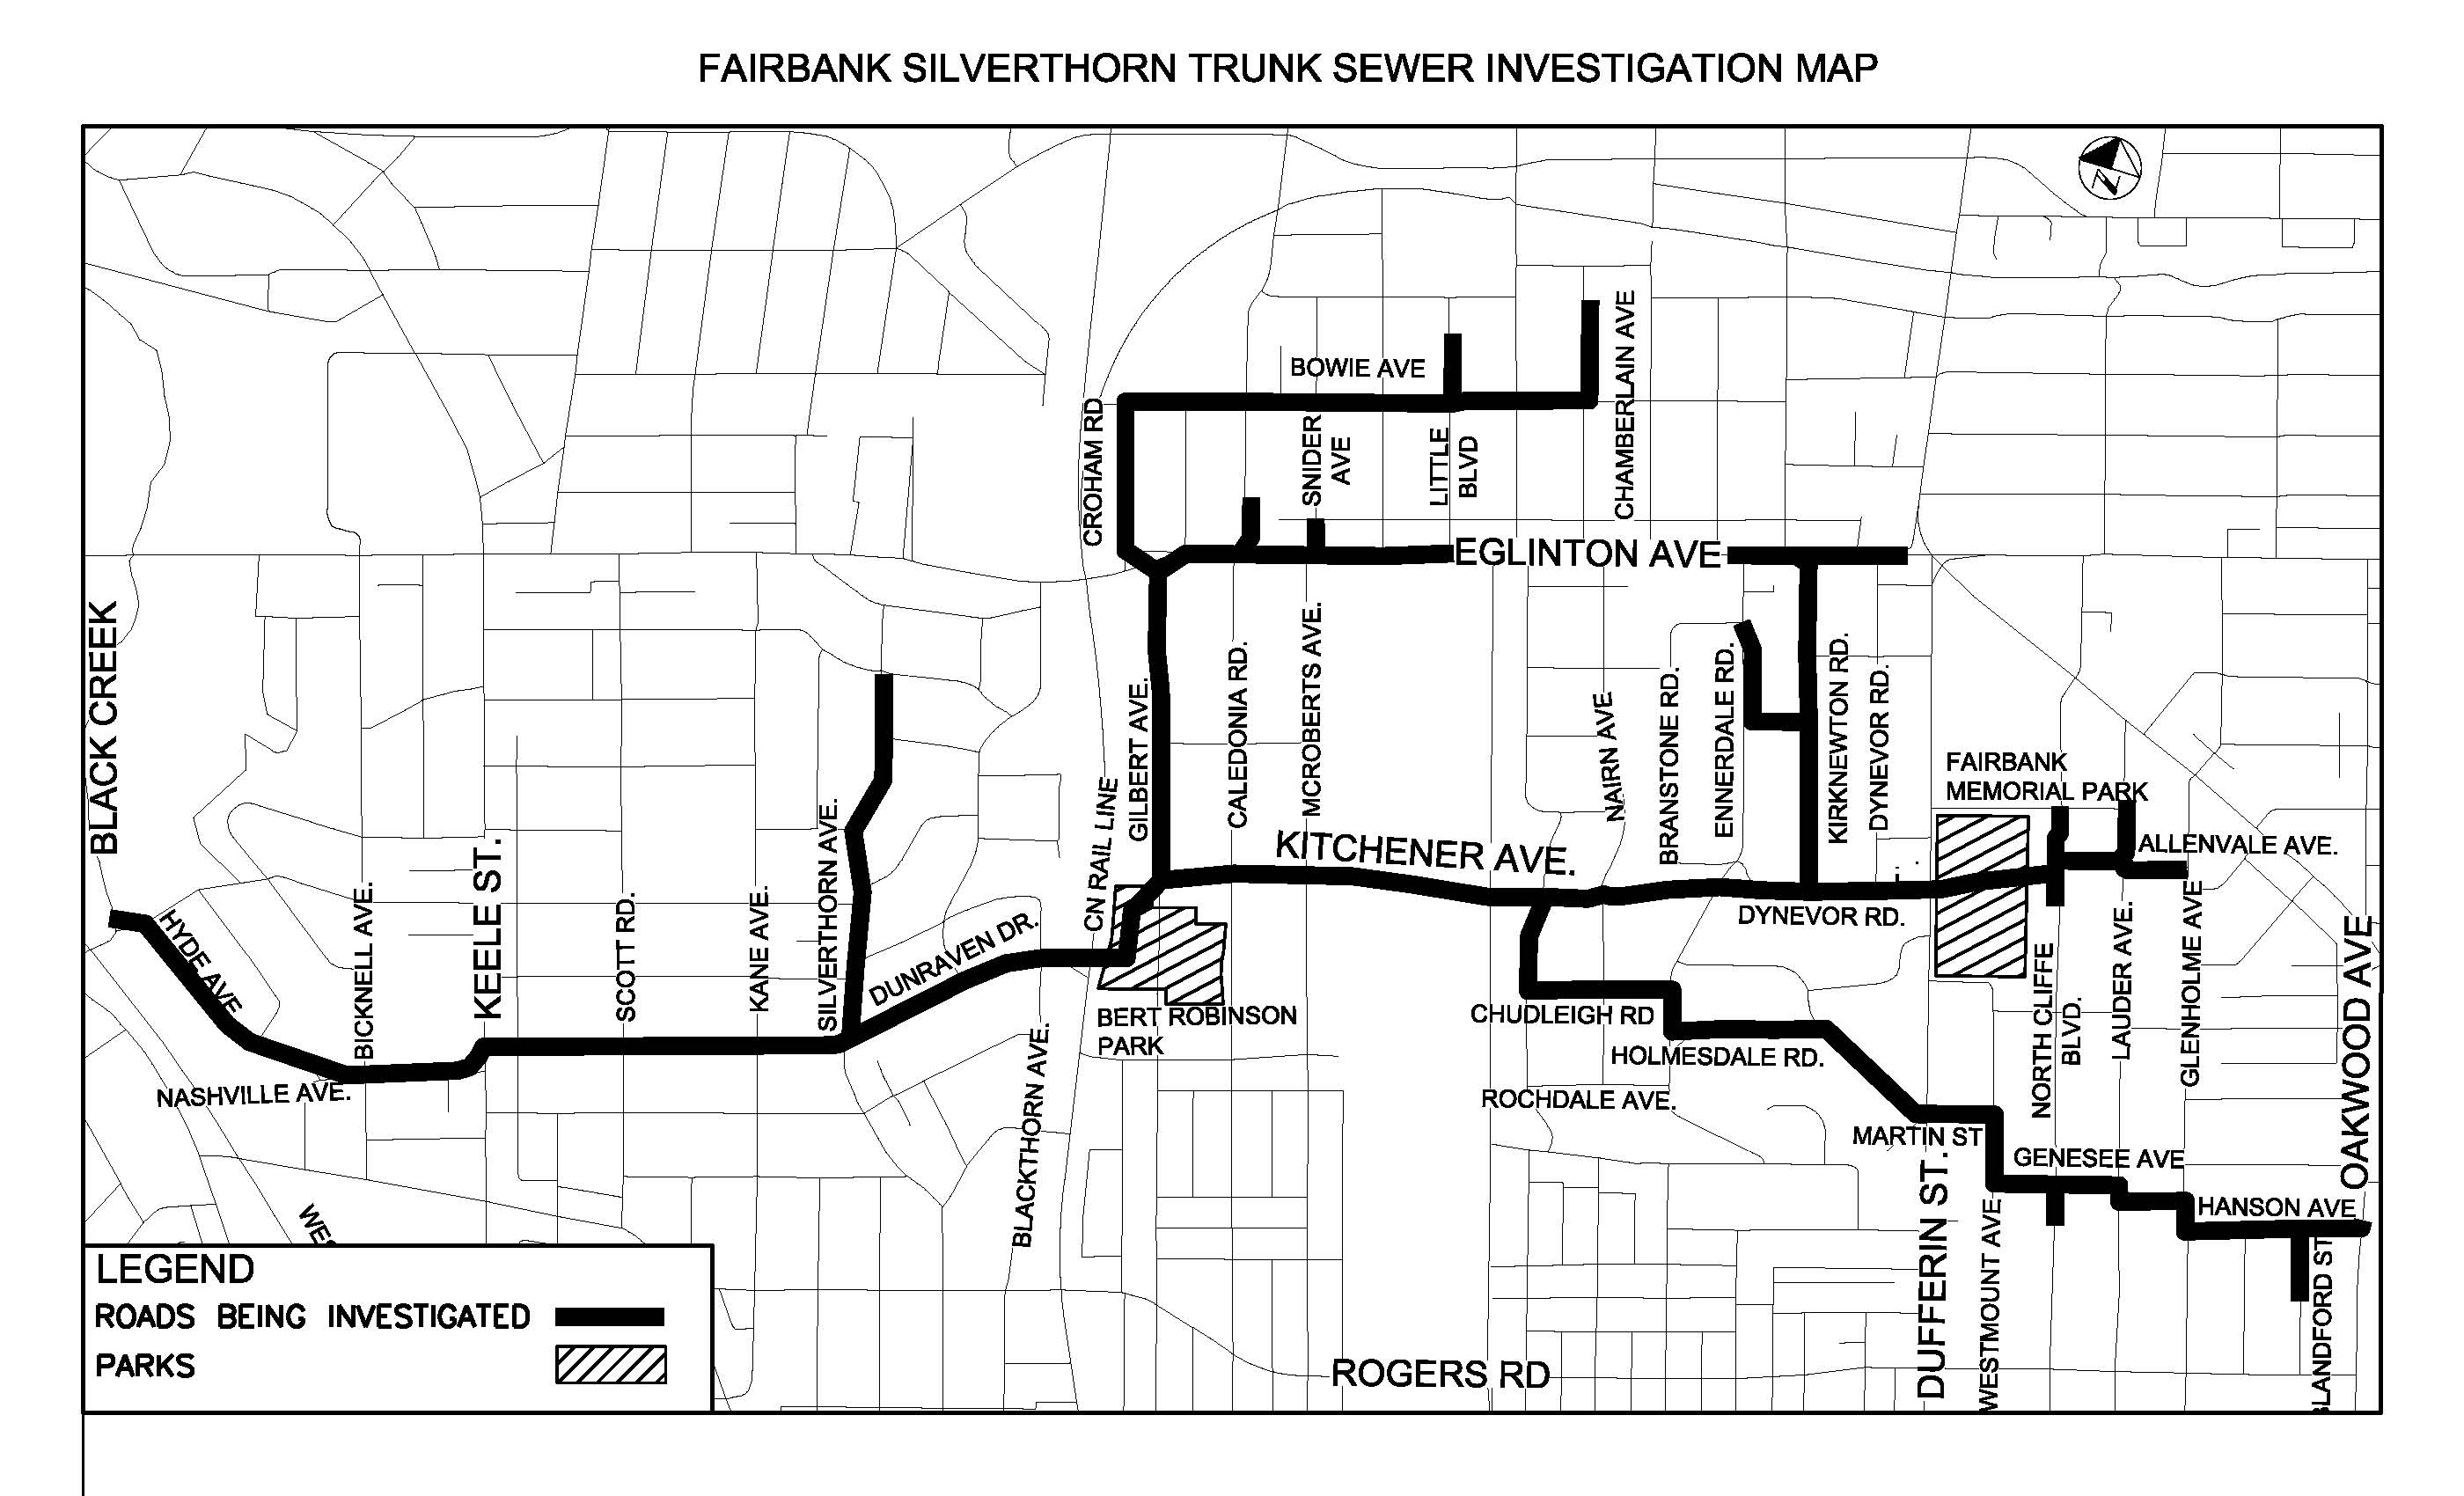 Fairbank Silverthorn Storm Trunk Sewer System City Of